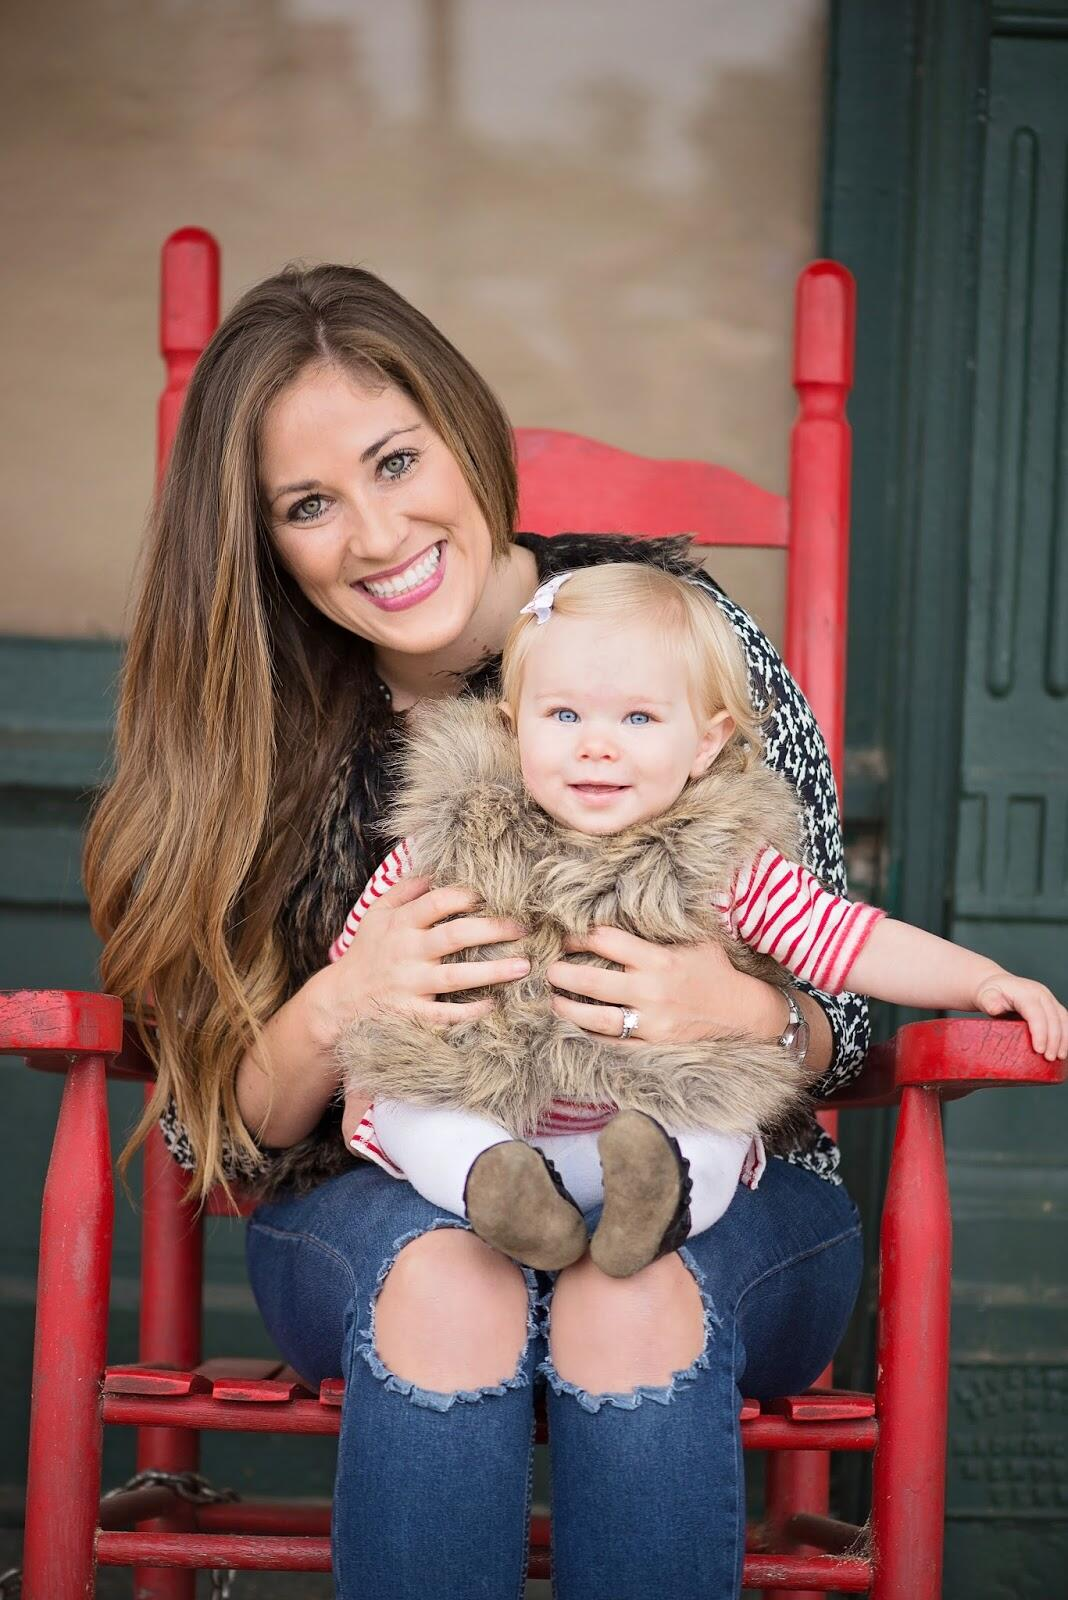 Family Photos with Minted Christmas Cards  by East Memphis mom blogger Walking in Memphis in High Heels